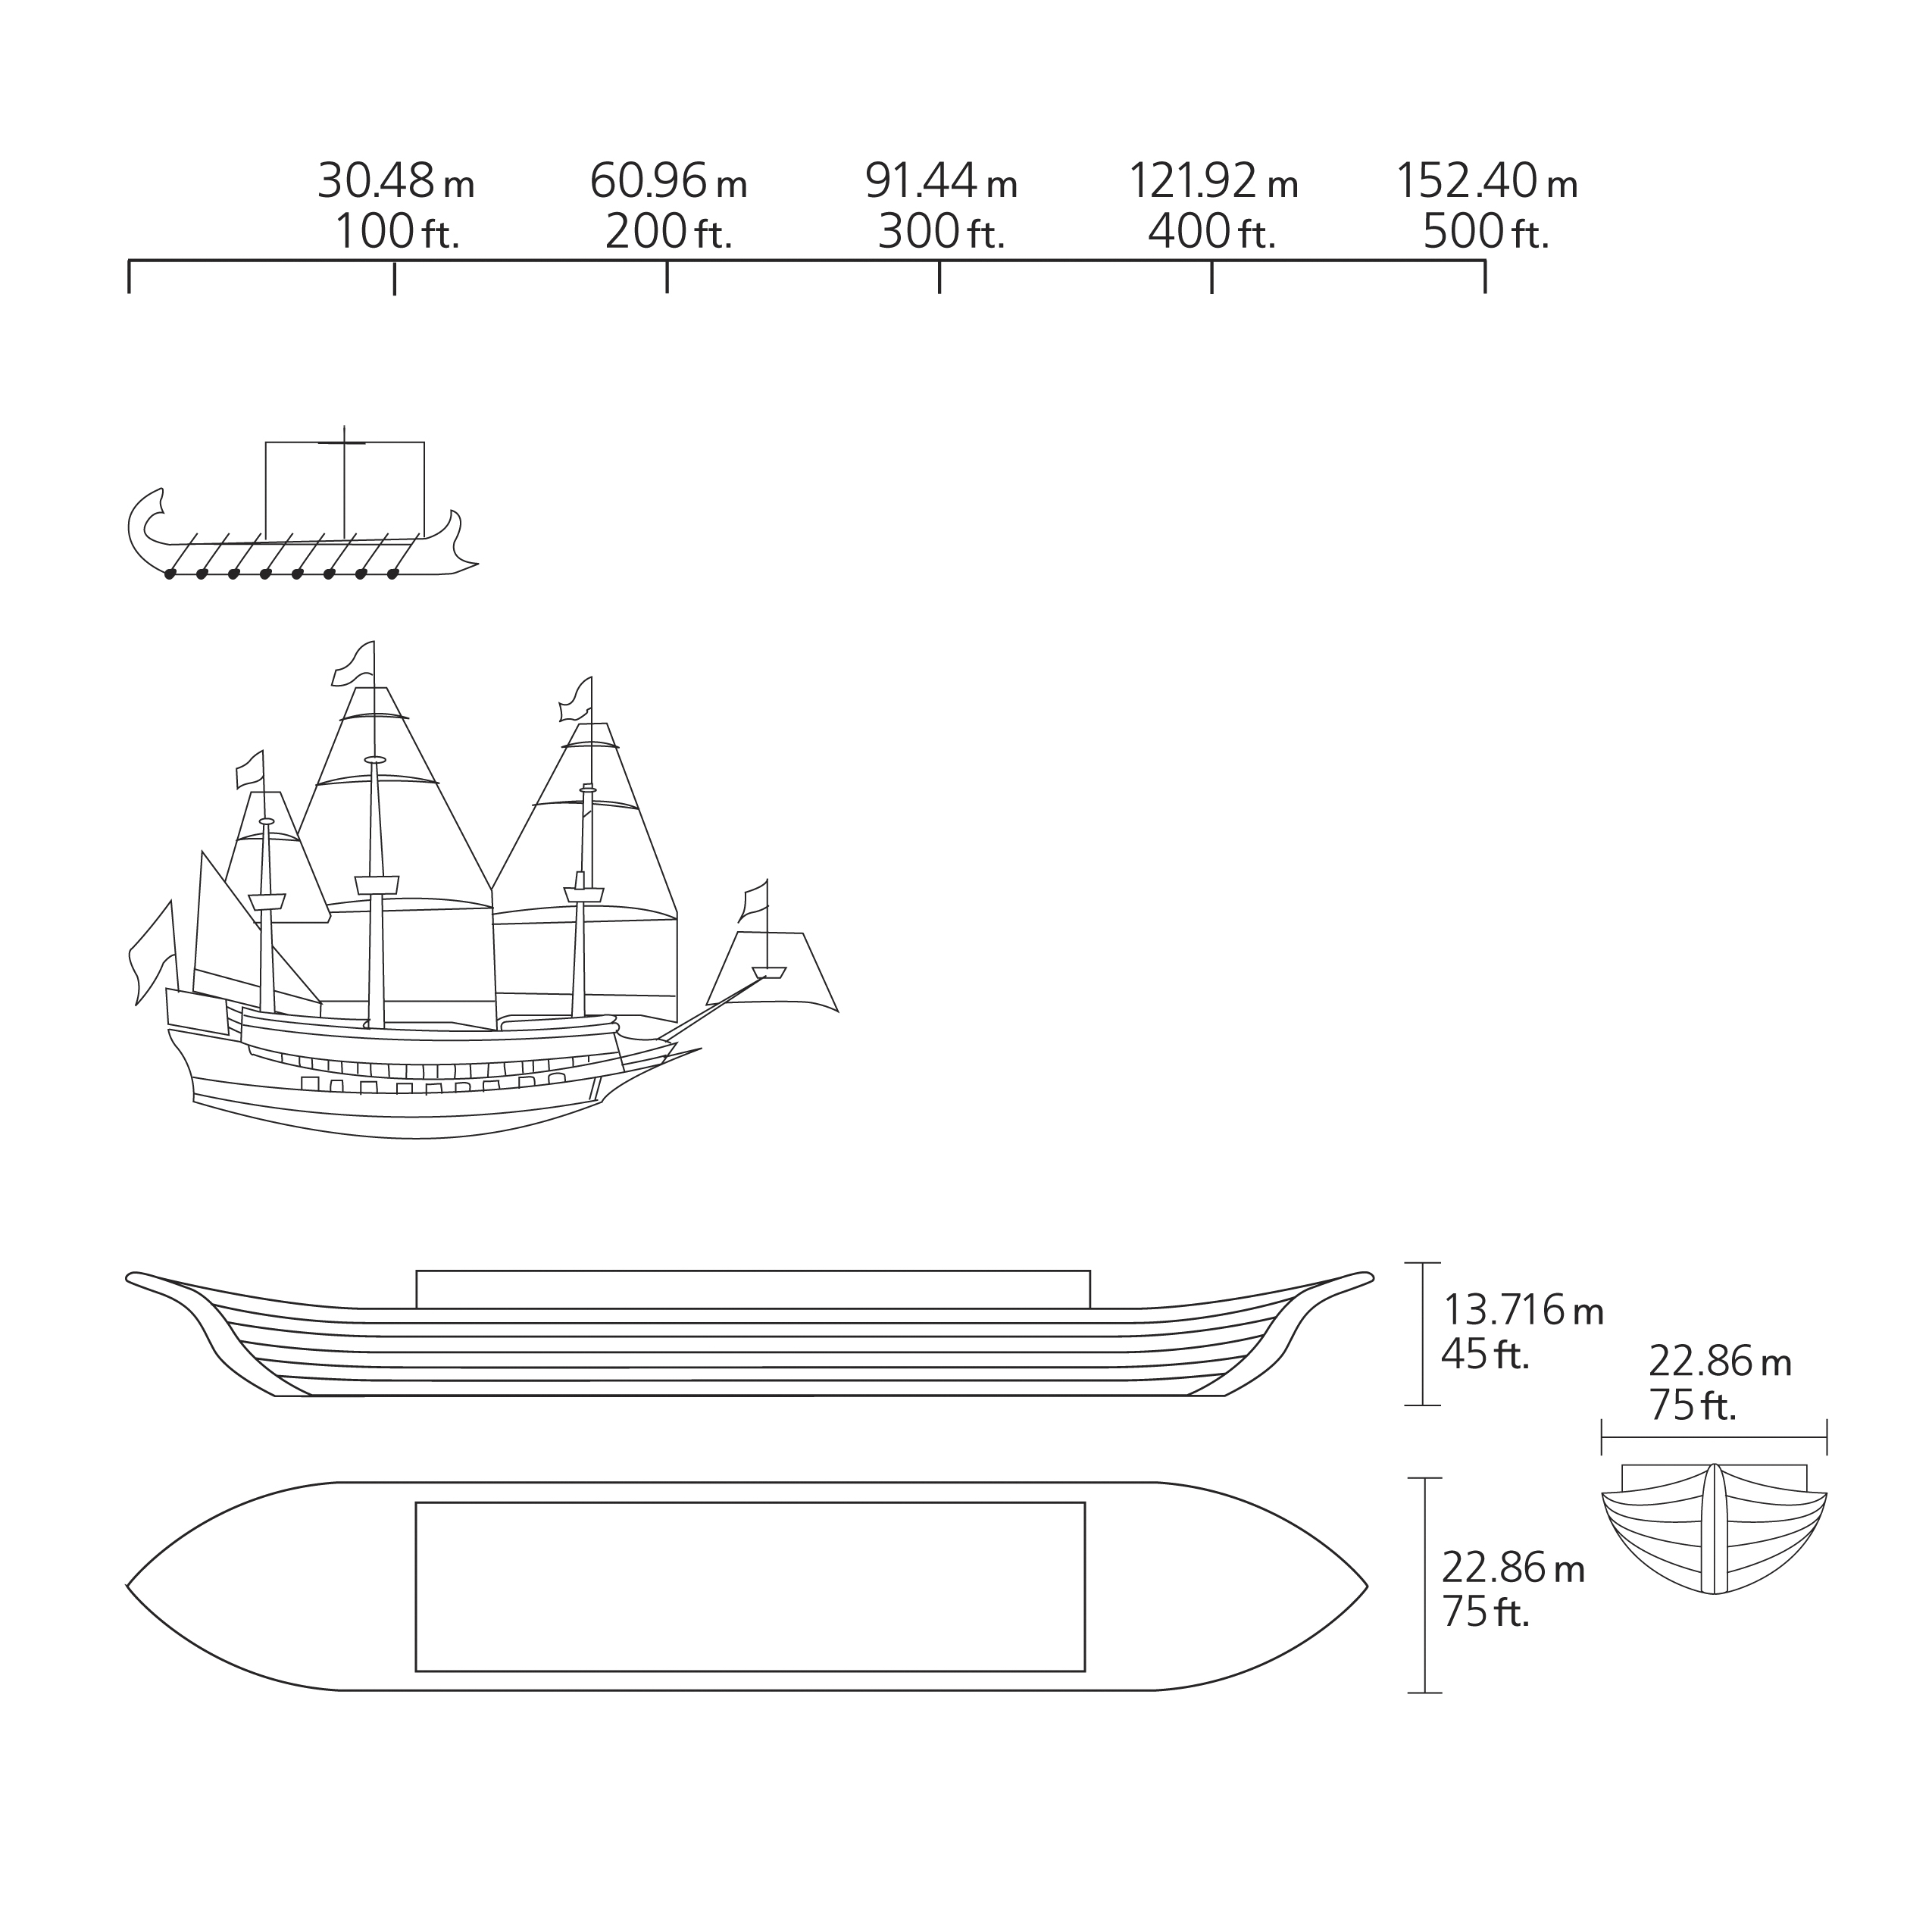 An illustration of the approximate dimensions of Noah's ark in comparison to other ships.